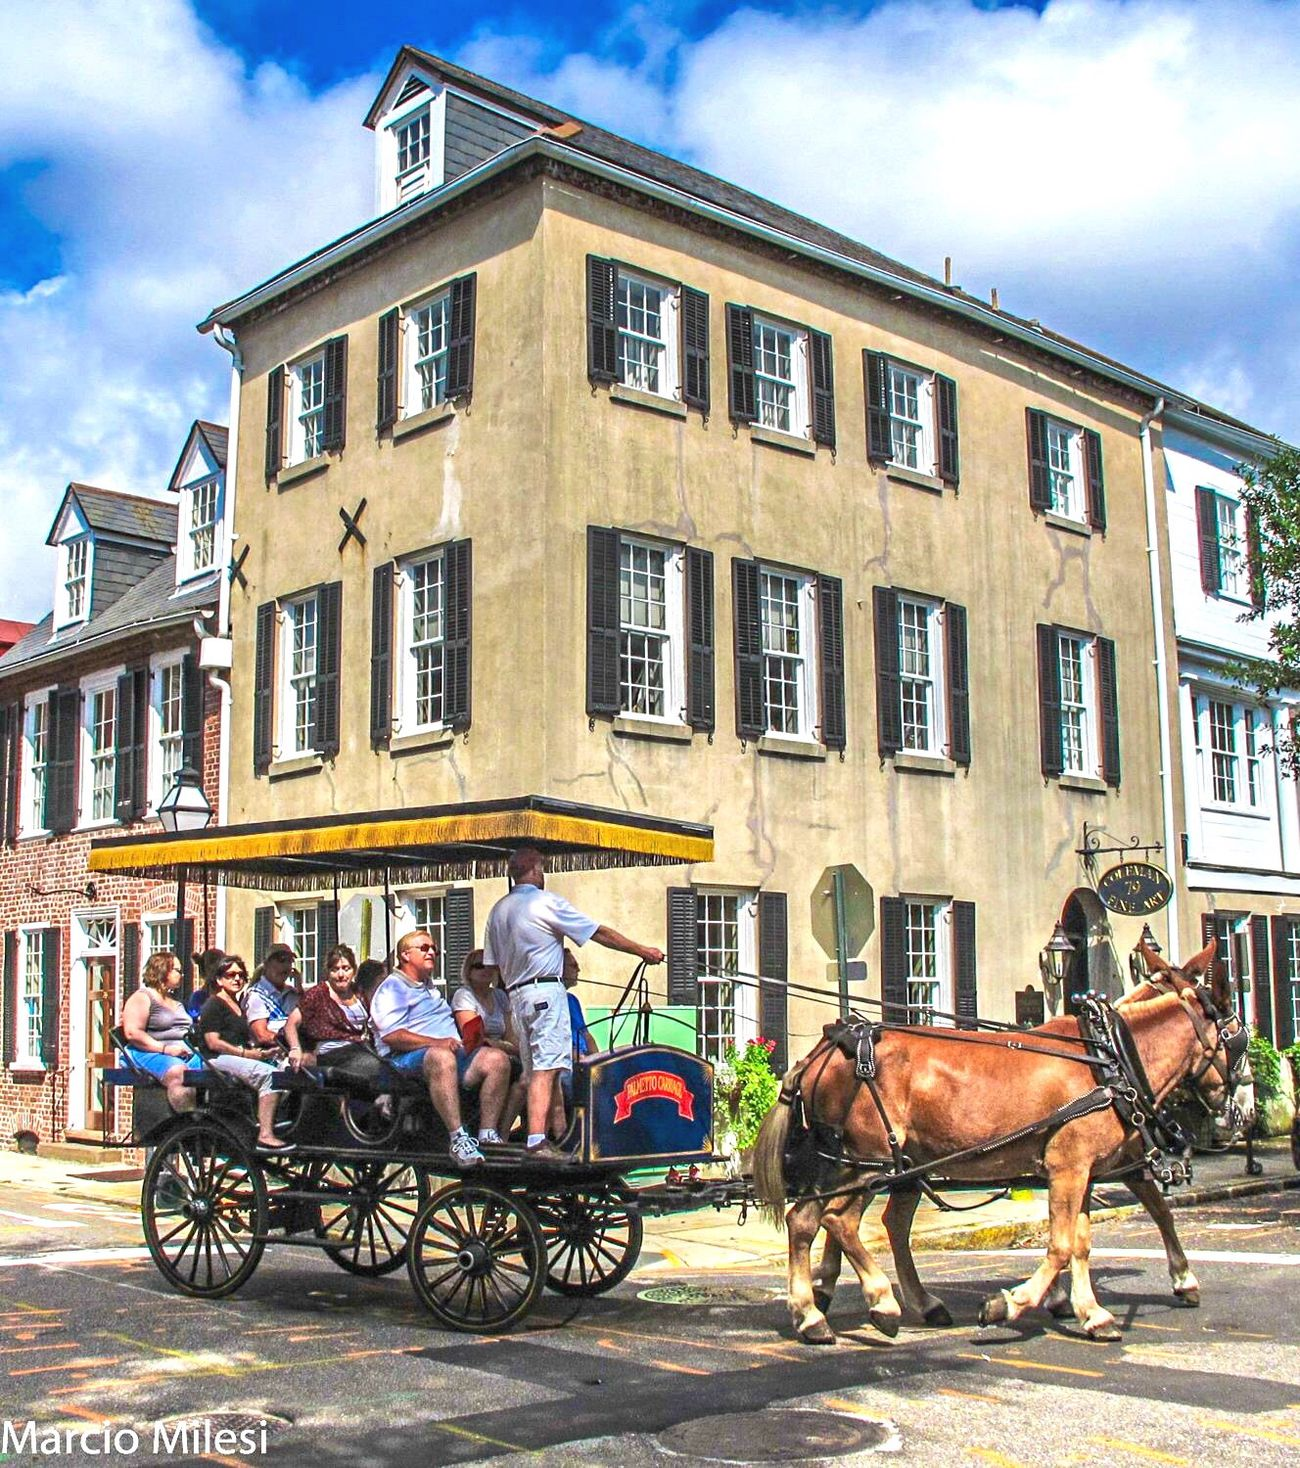 Building Exterior Architecture Horse Built Structure City Domestic Animals Transportation Cloud - Sky Mode Of Transport Sky Sunlight Working Animal Day Men People Charleston SC USA Beautifulplace Beautifulhouse